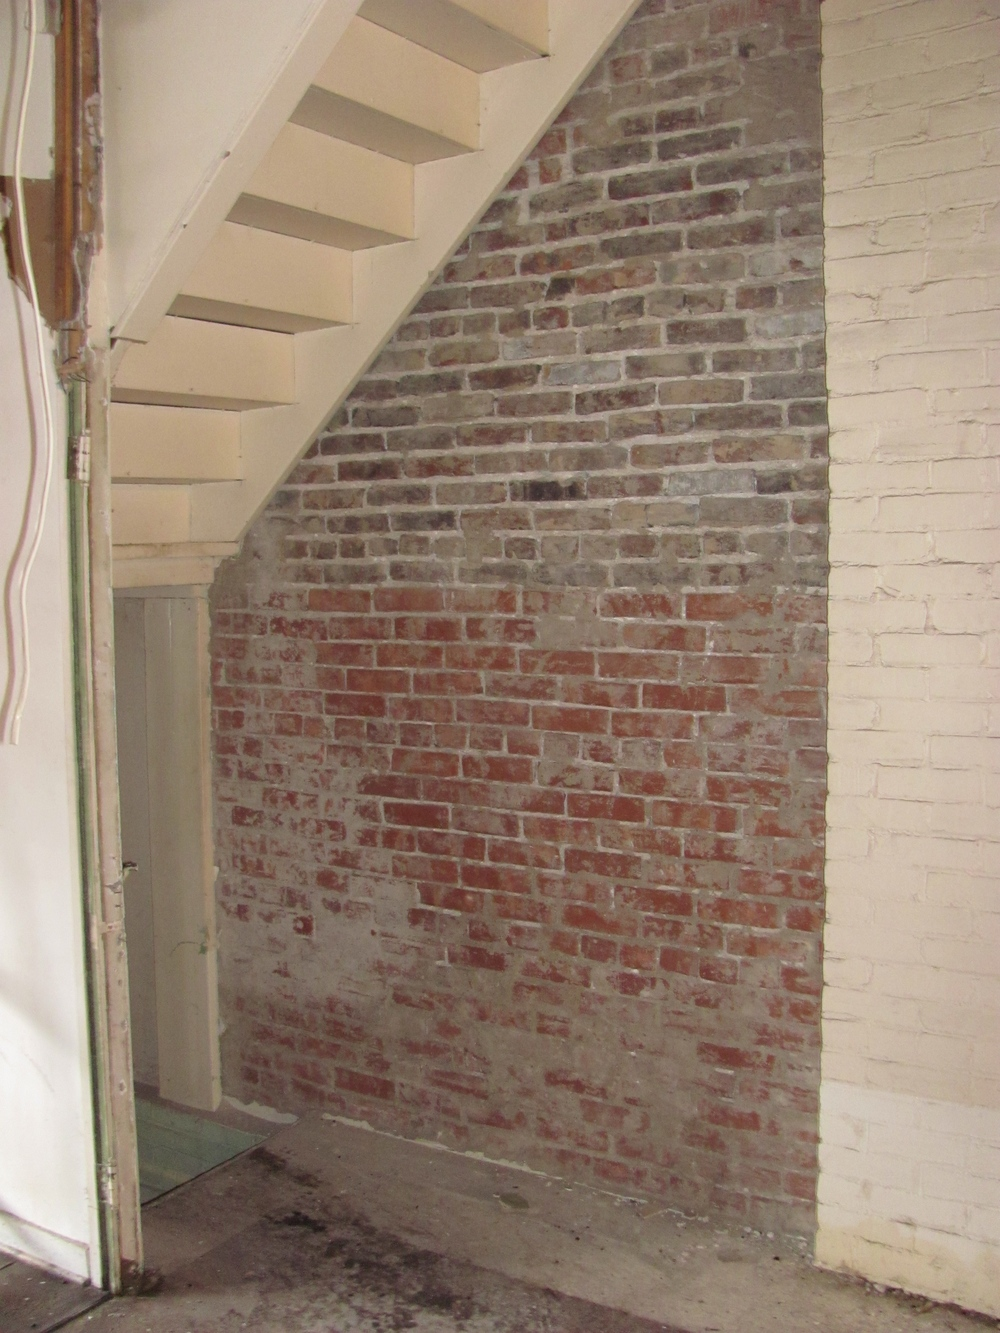 That stairwell will be disappearing soon giving us more space to work with in the front of the store.